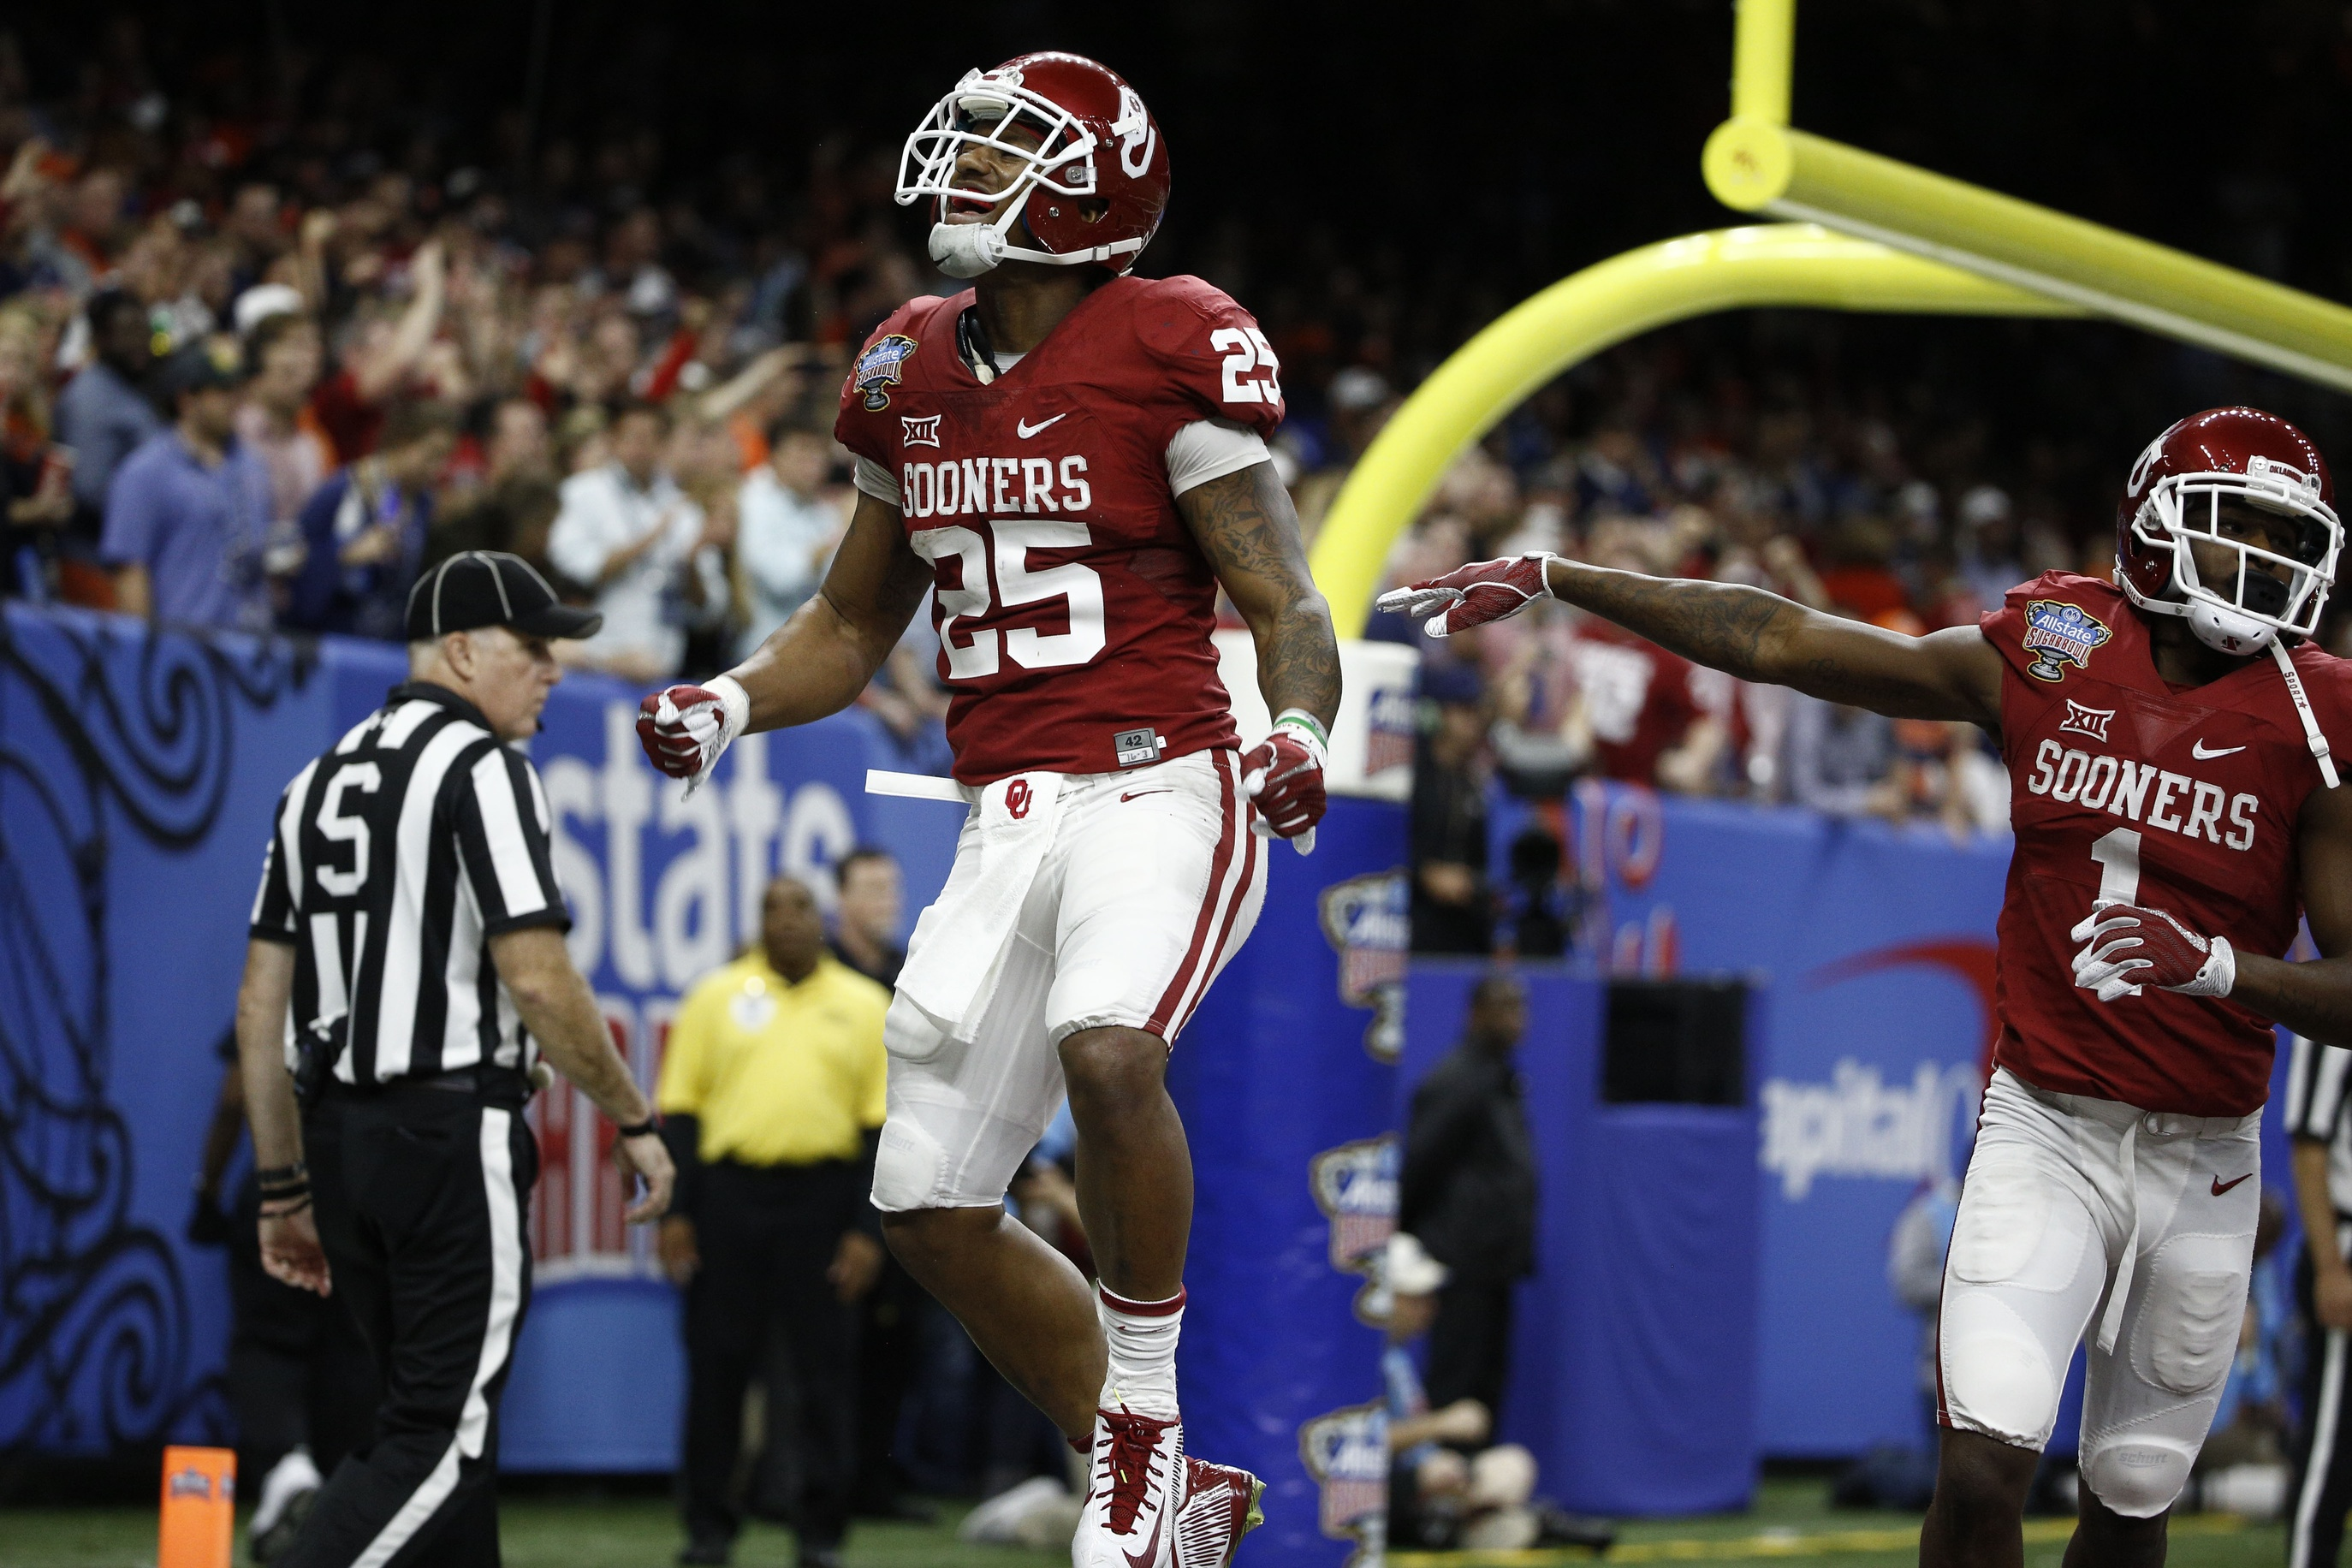 Jan 2, 2017; New Orleans , LA, USA; Oklahoma Sooners running back Joe Mixon (25) reacts with wide receiver Jarvis Baxter (1) after scoring a touchdown against the Auburn Tigers in the second quarter of the 2017 Sugar Bowl at the Mercedes-Benz Superdome. Mandatory Credit: Derick E. Hingle-USA TODAY Sports